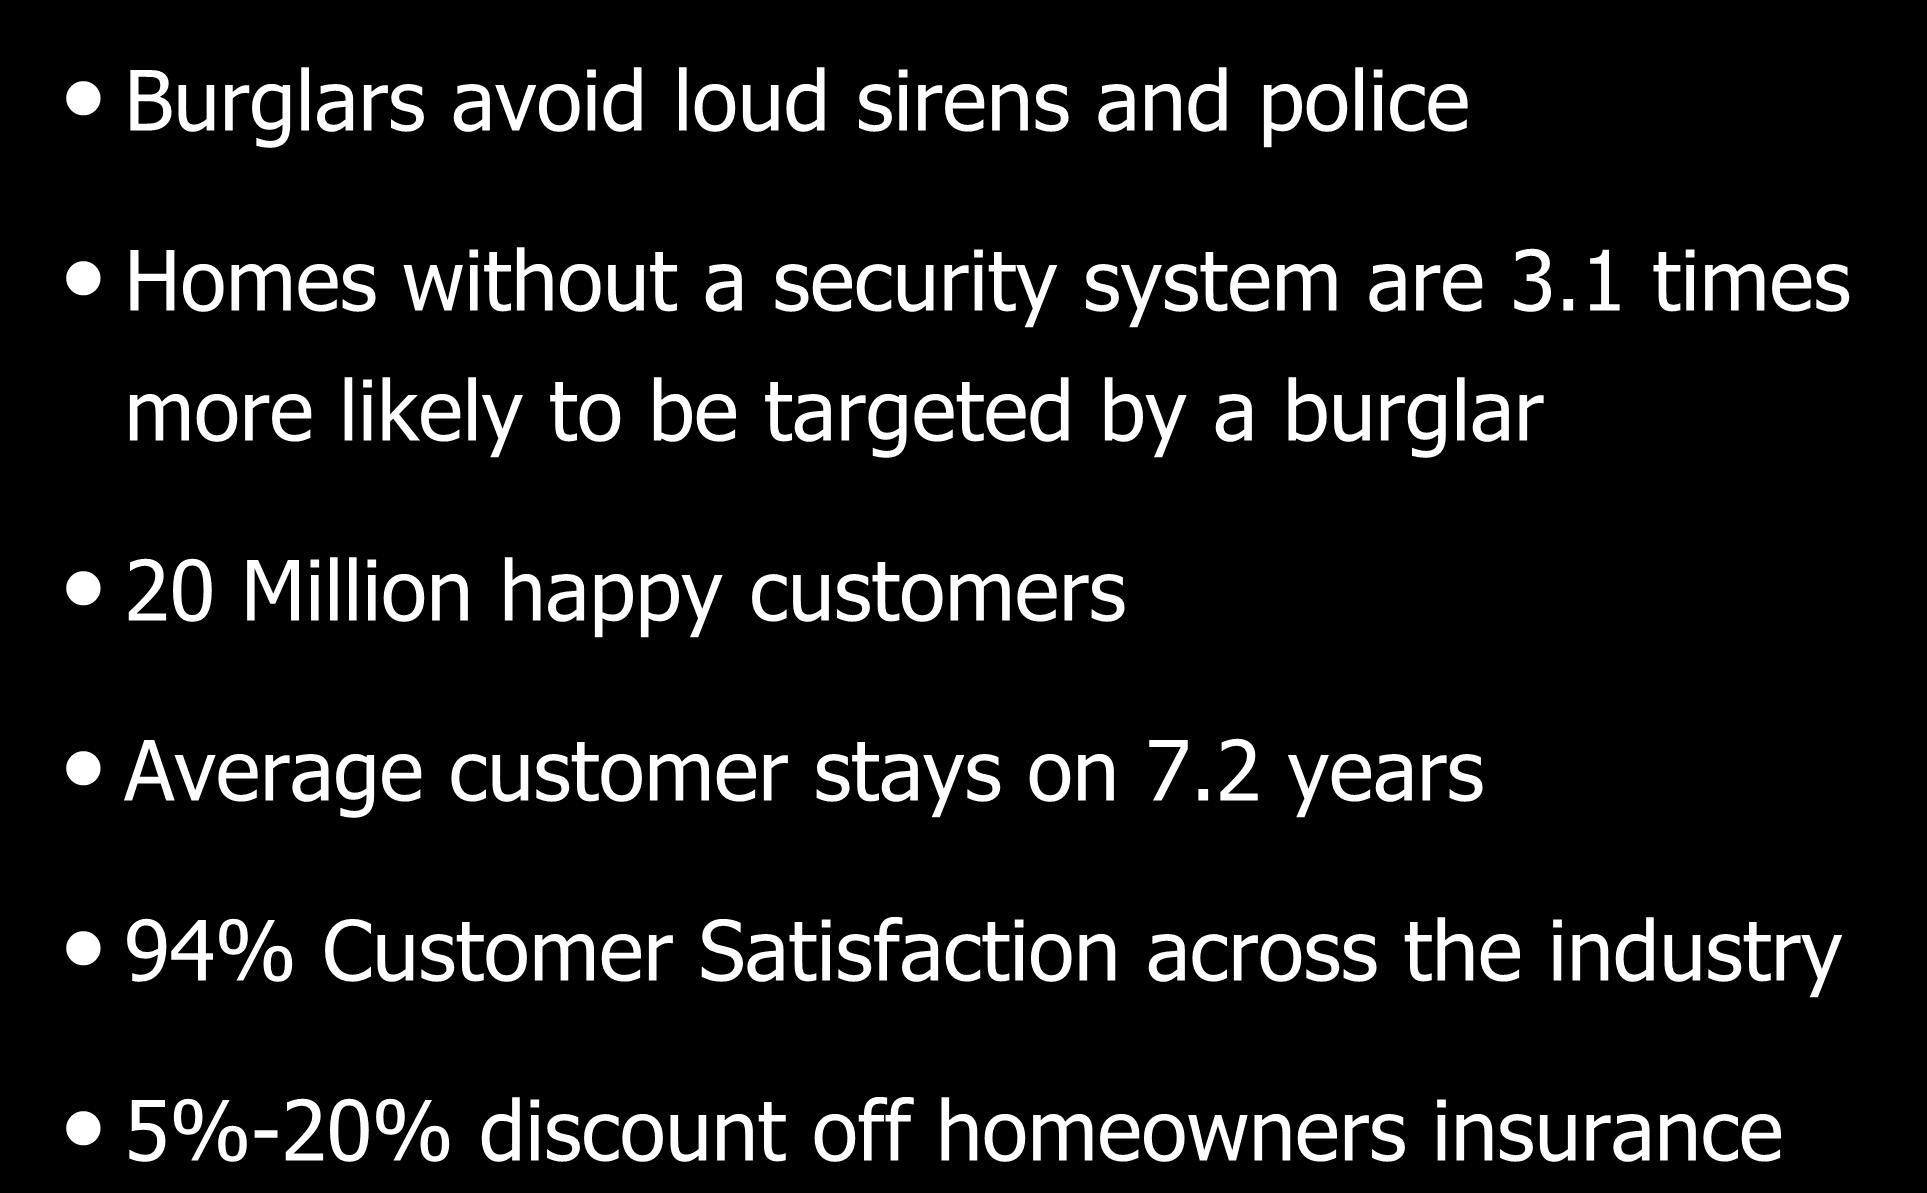 Security Systems Work! Burglars avoid loud sirens and police Homes without a security system are 3.